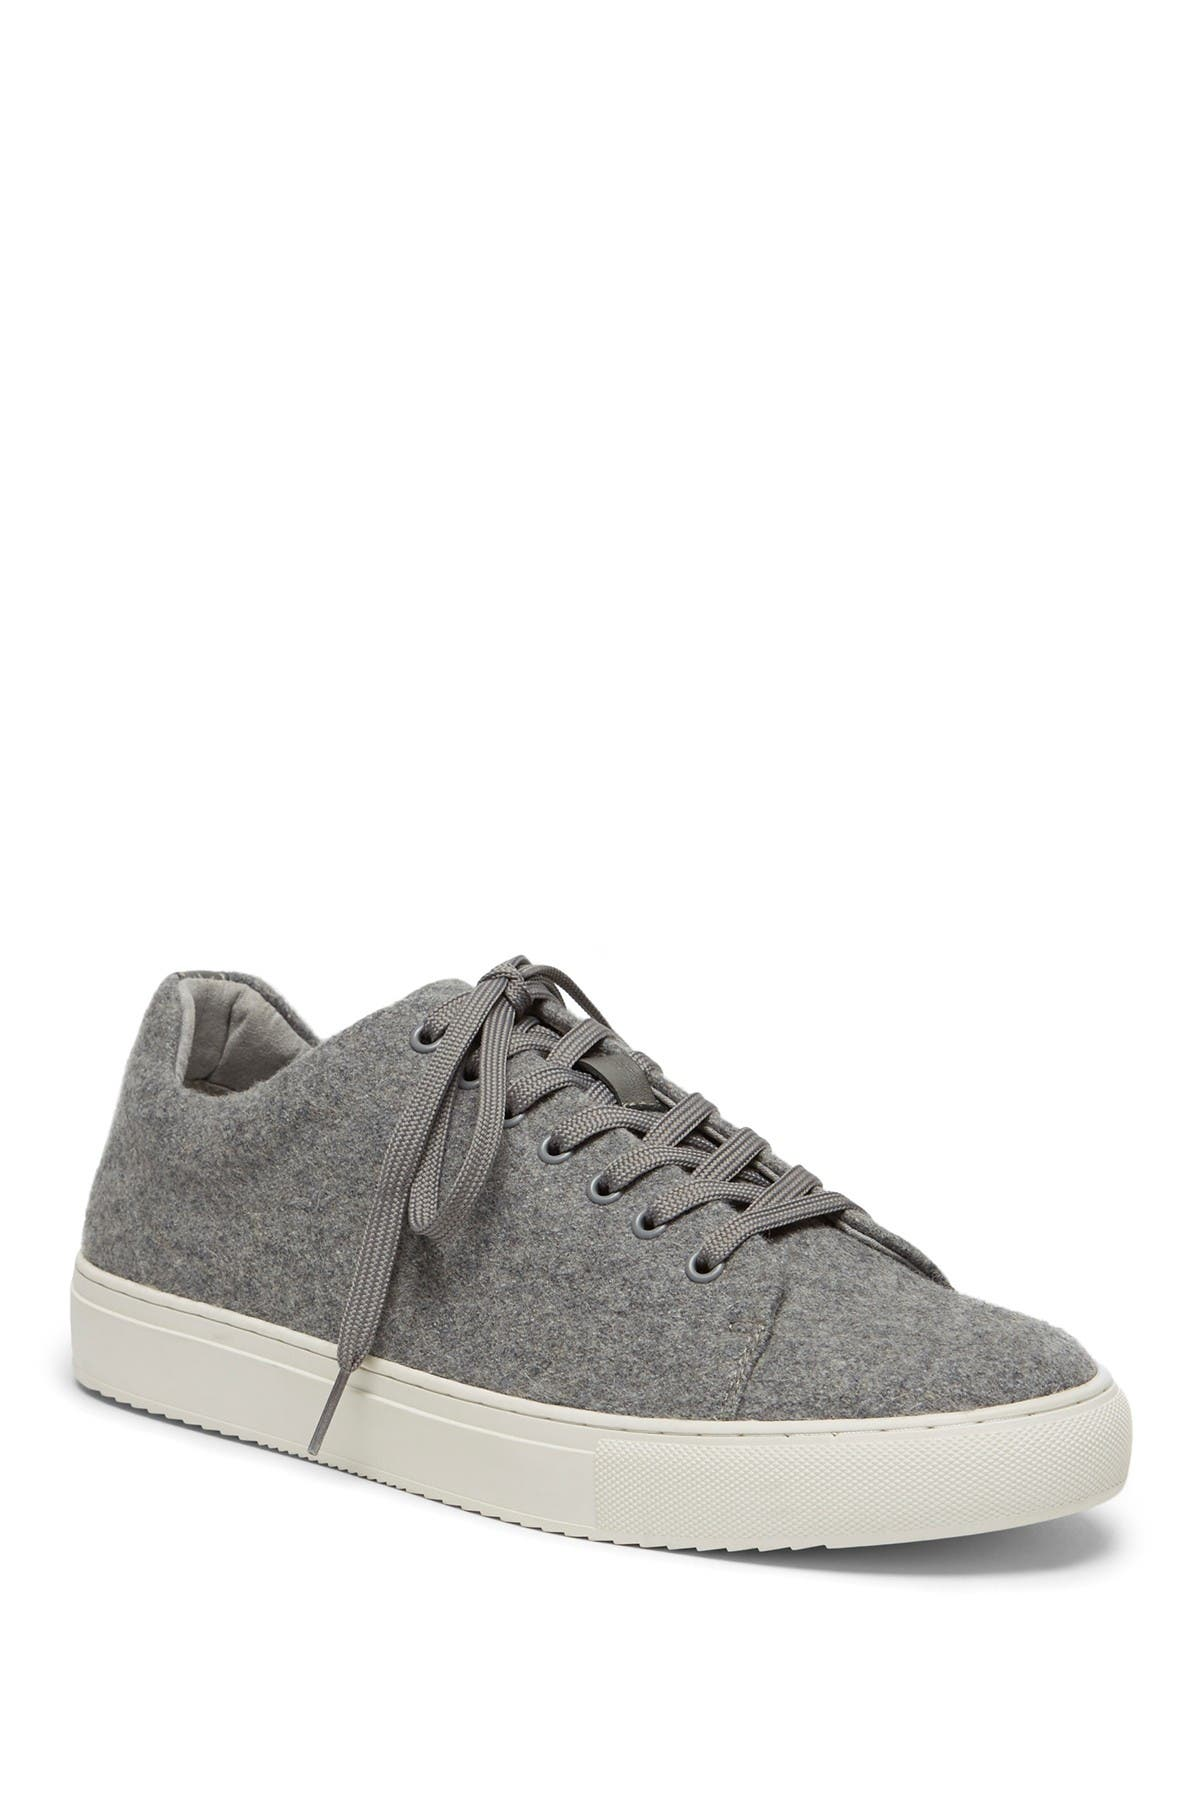 Image of Kenneth Cole Reaction Elite Sneaker